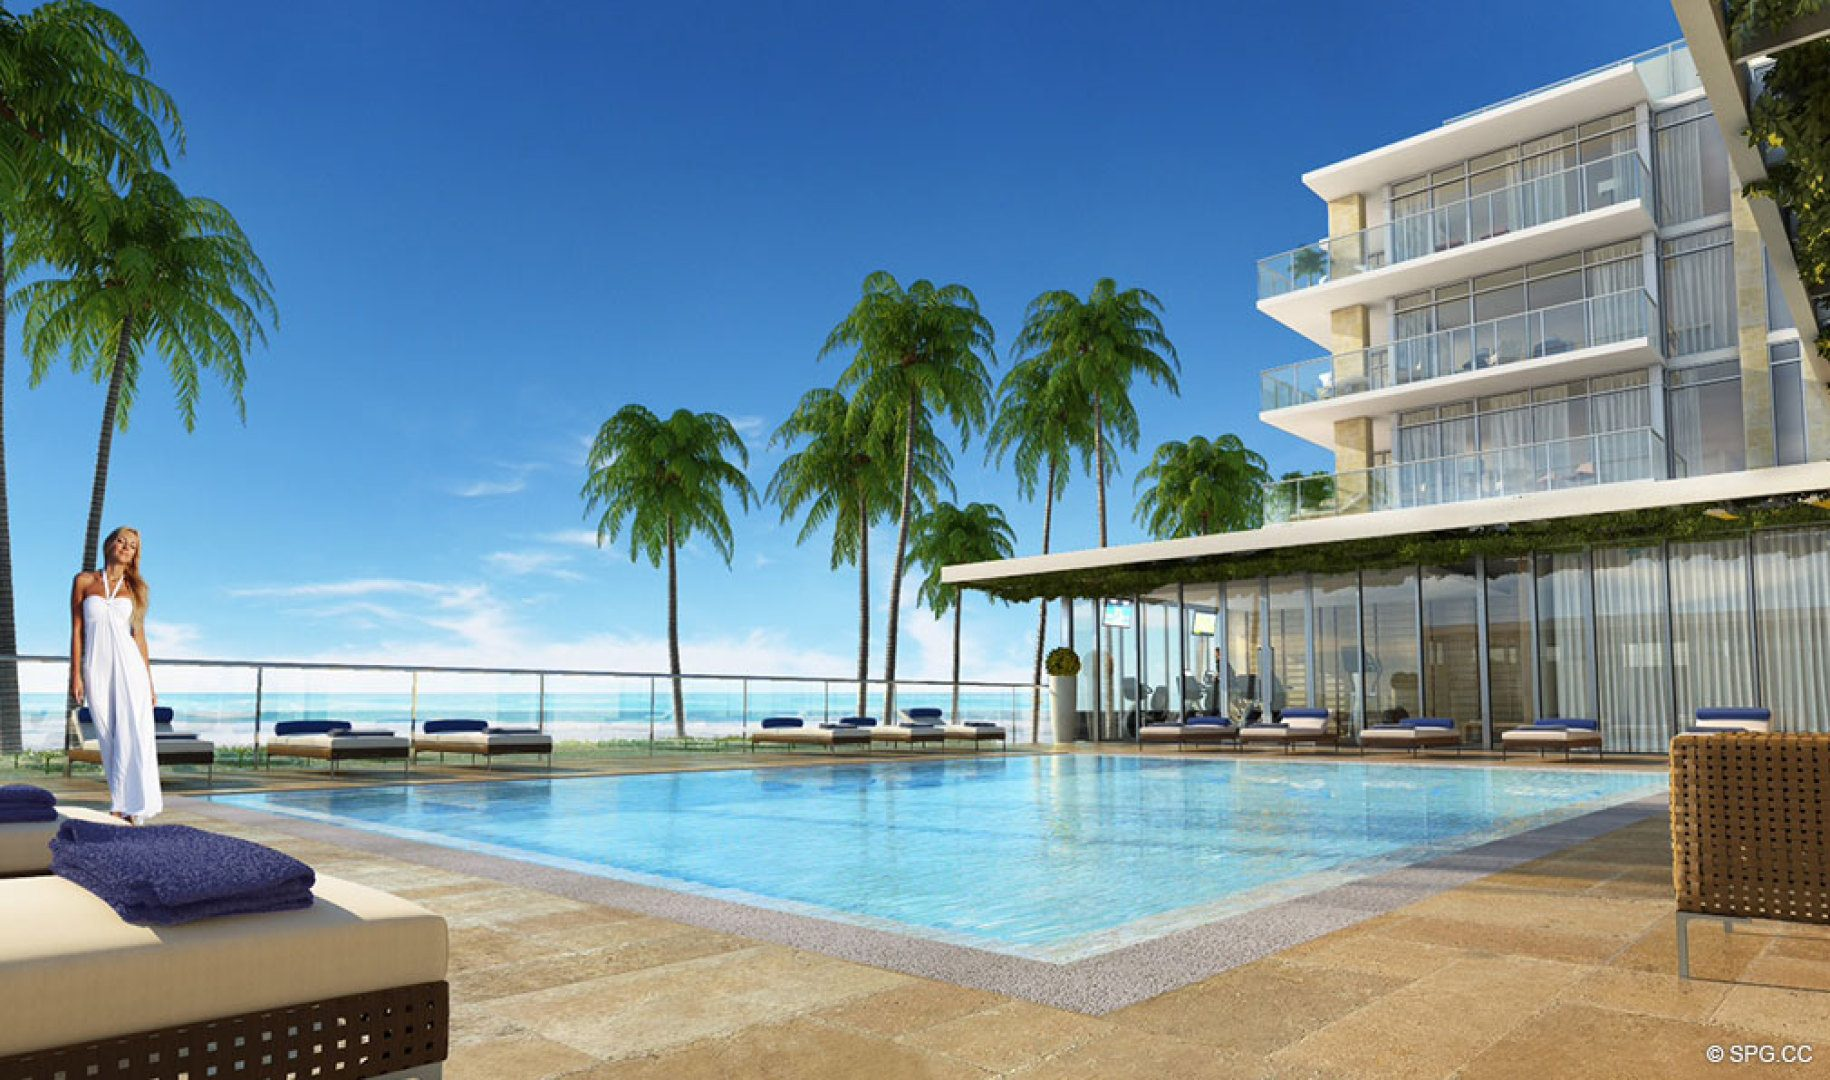 The Beachfront Pool Deck at Sage Beach, Luxury Oceanfront Condos in Hollywood Beach Florida 33019